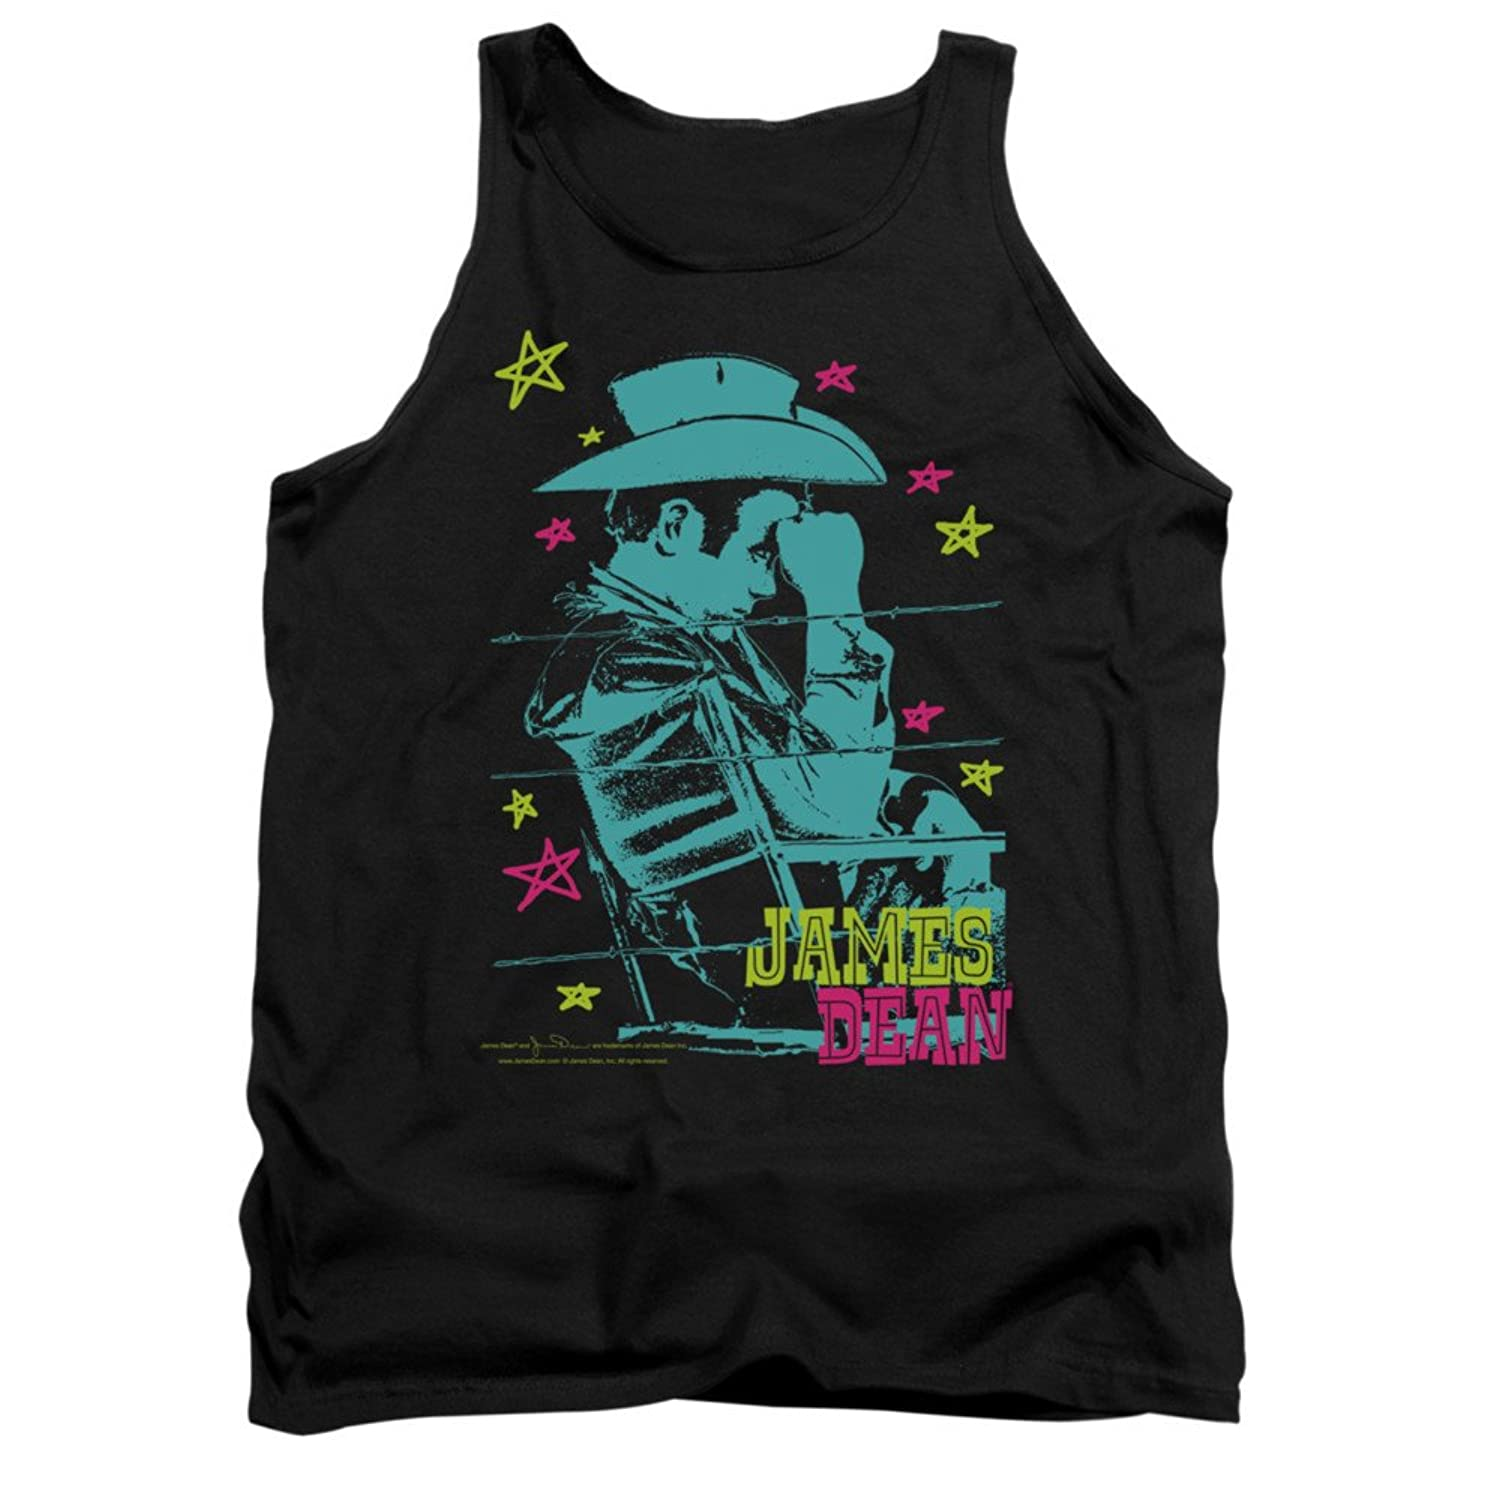 James Dean Icon Movie Actor Barb Wire Cowboy Adult Tank Top Shirt